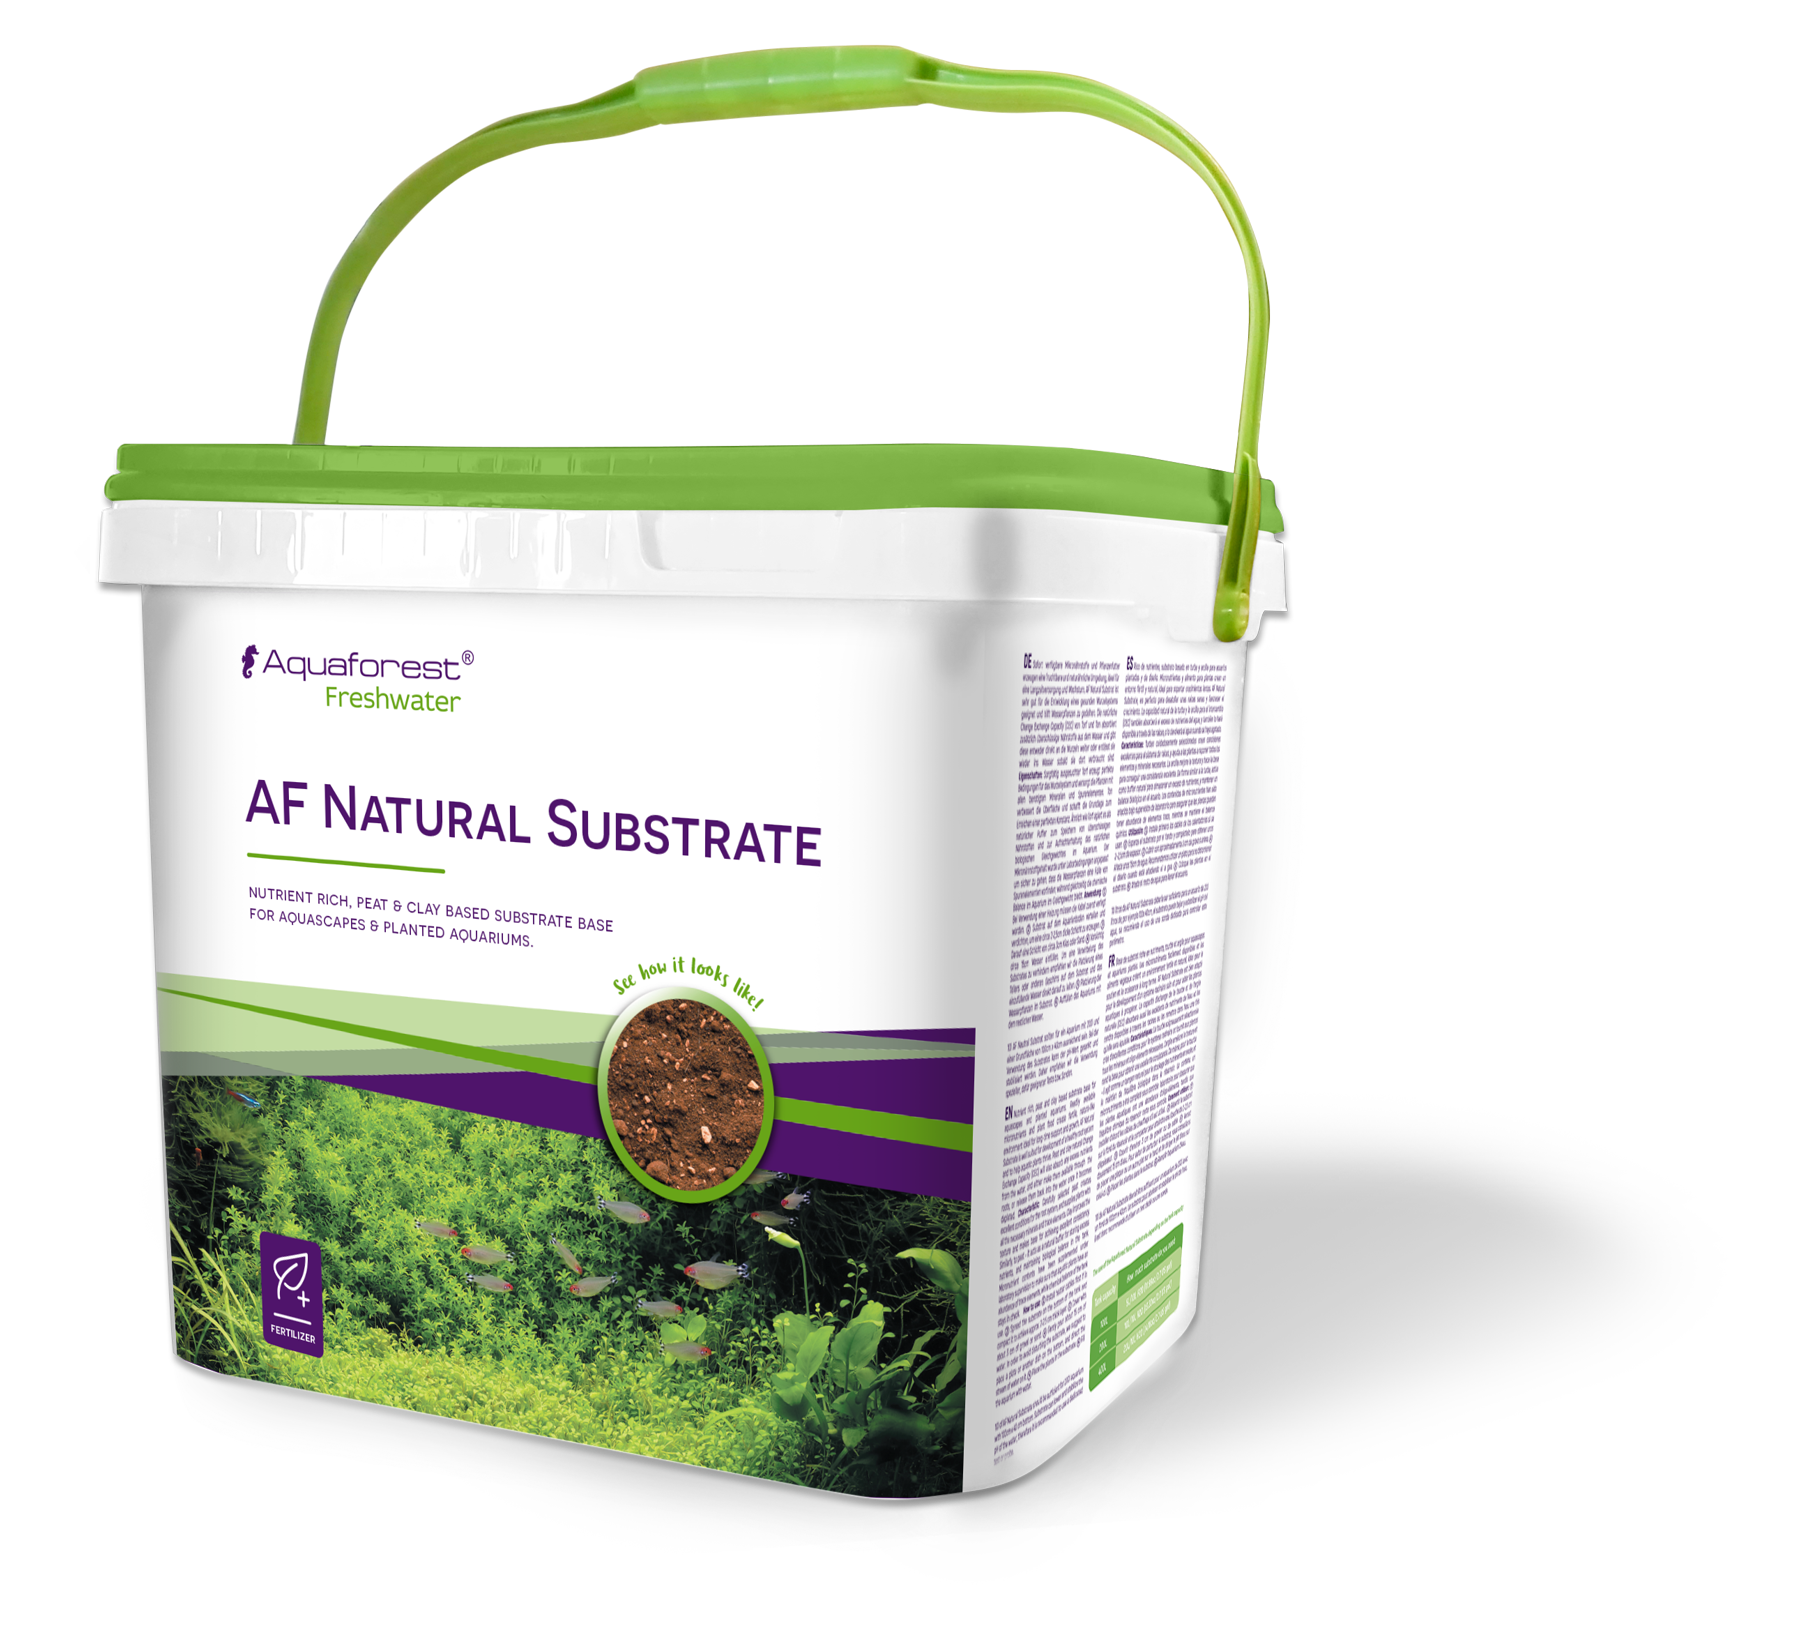 Aquaforest Natural Substrate